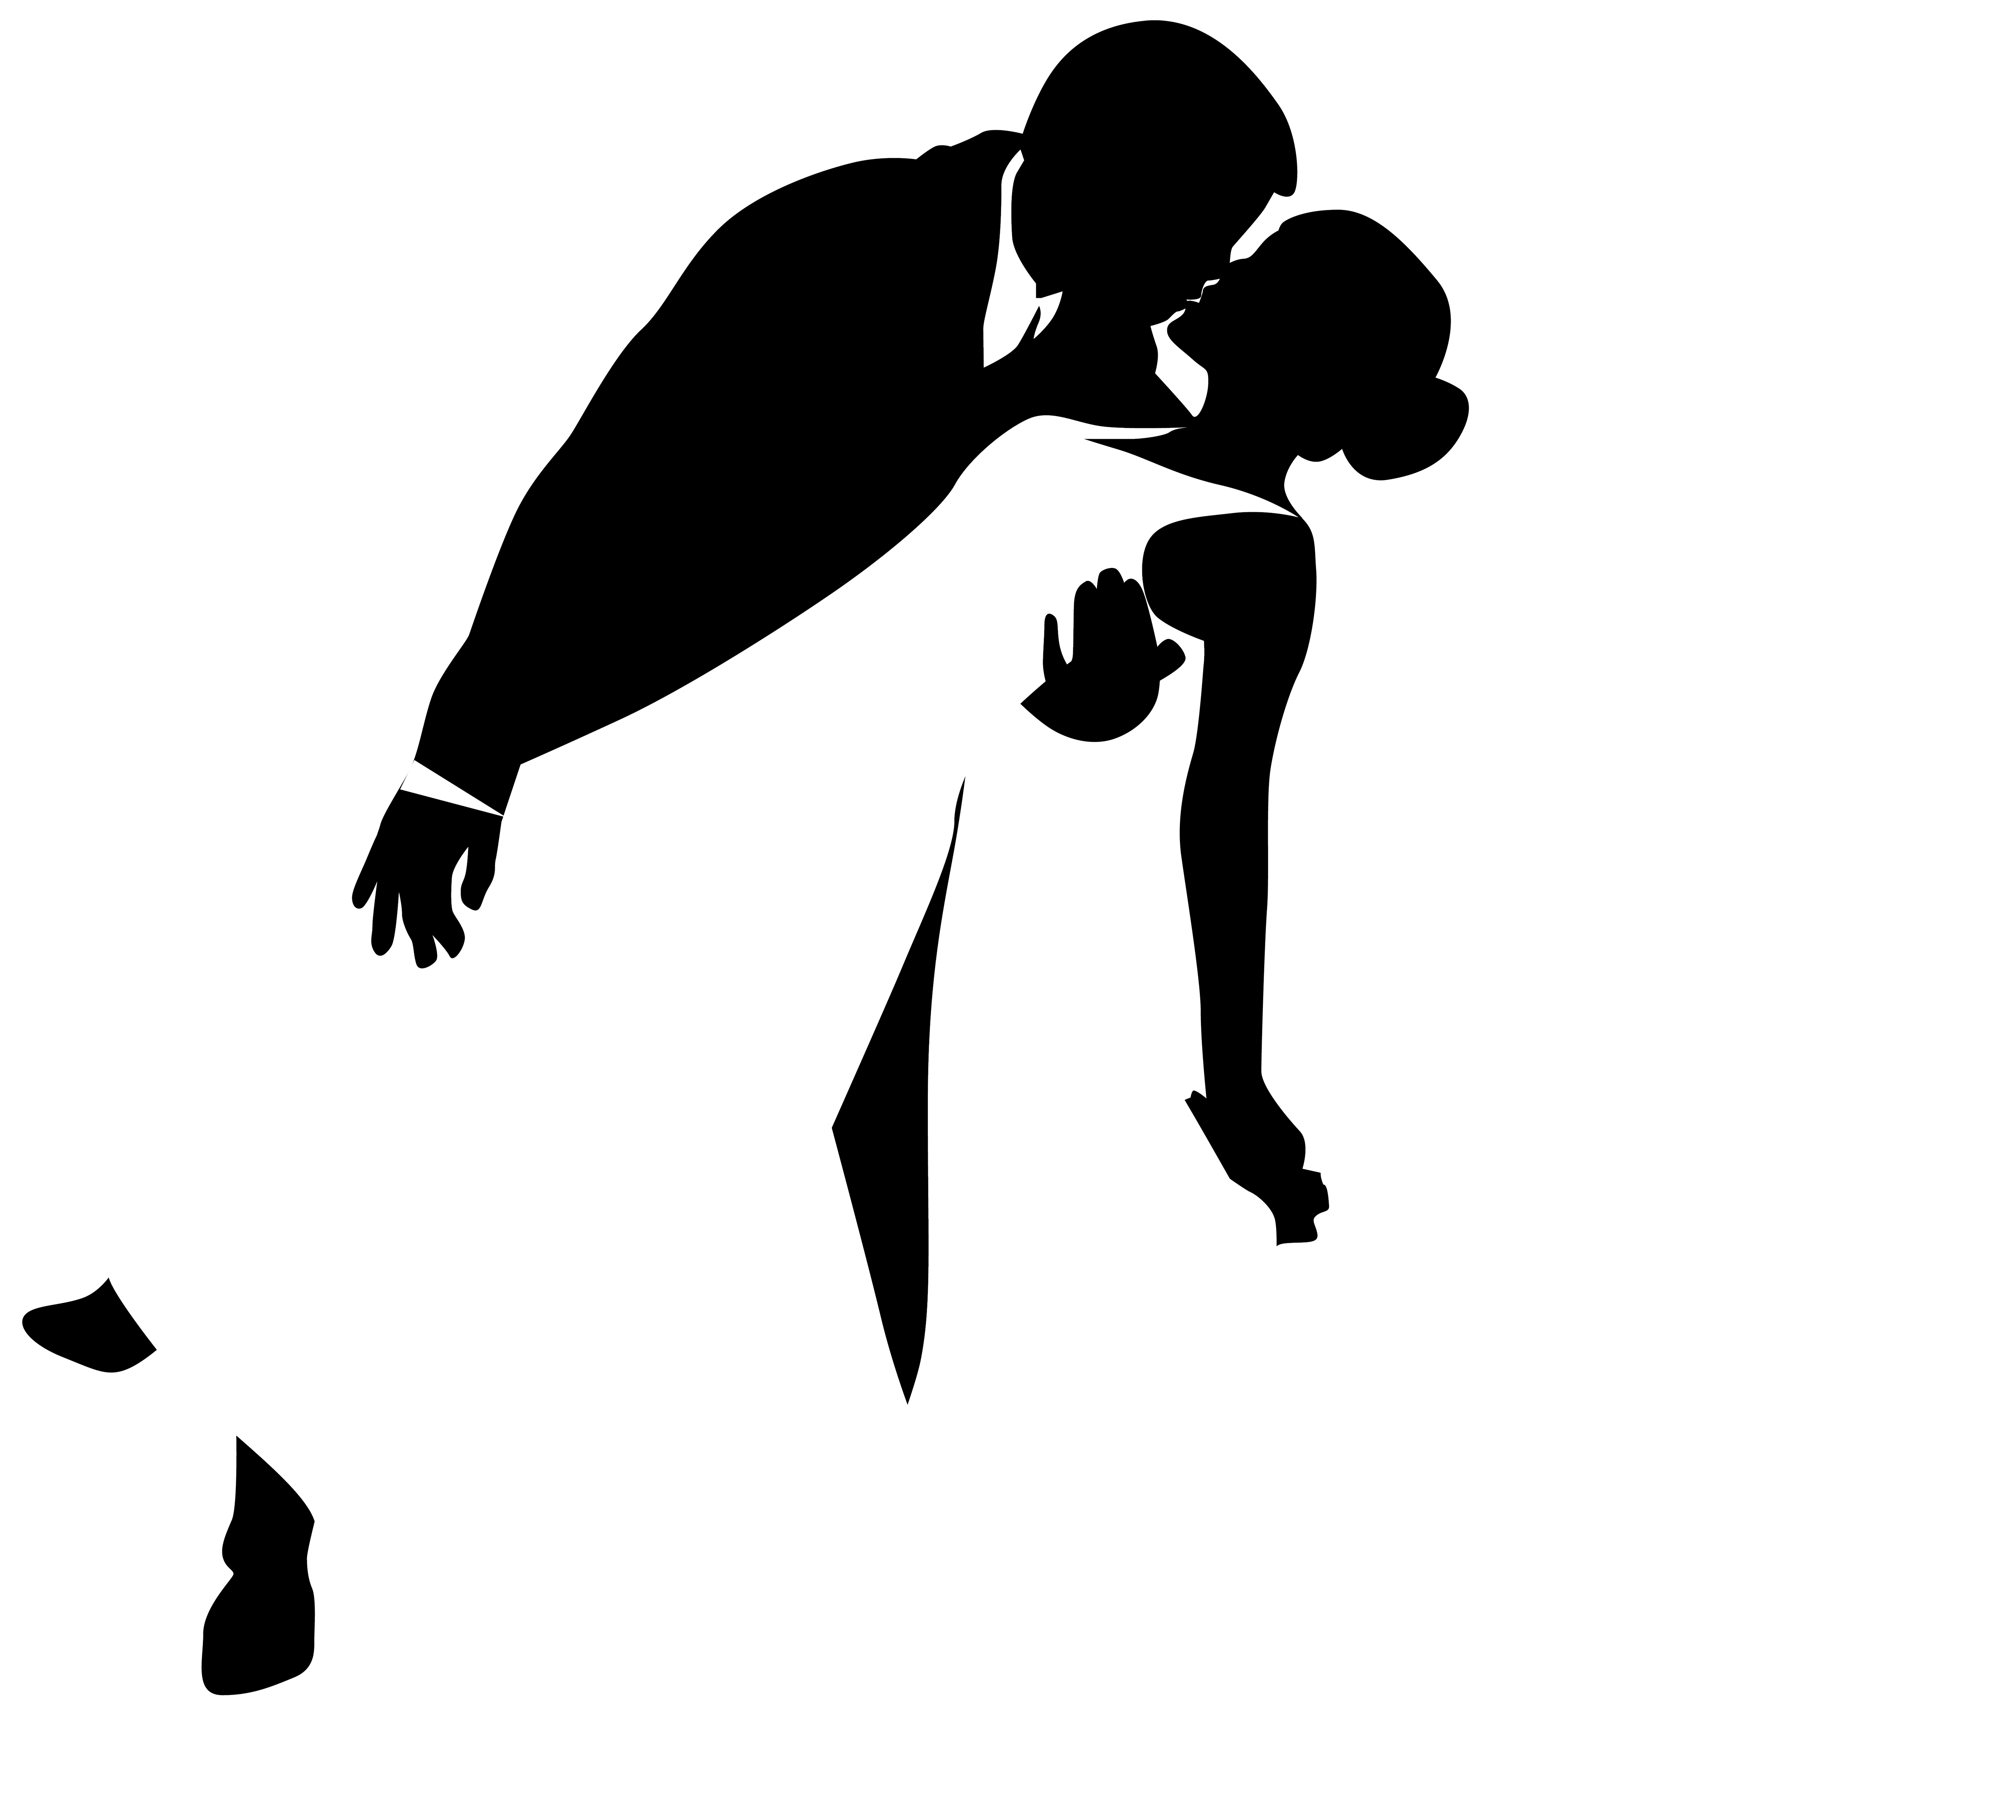 vector royalty free stock Black And White Silhouette Art at GetDrawings